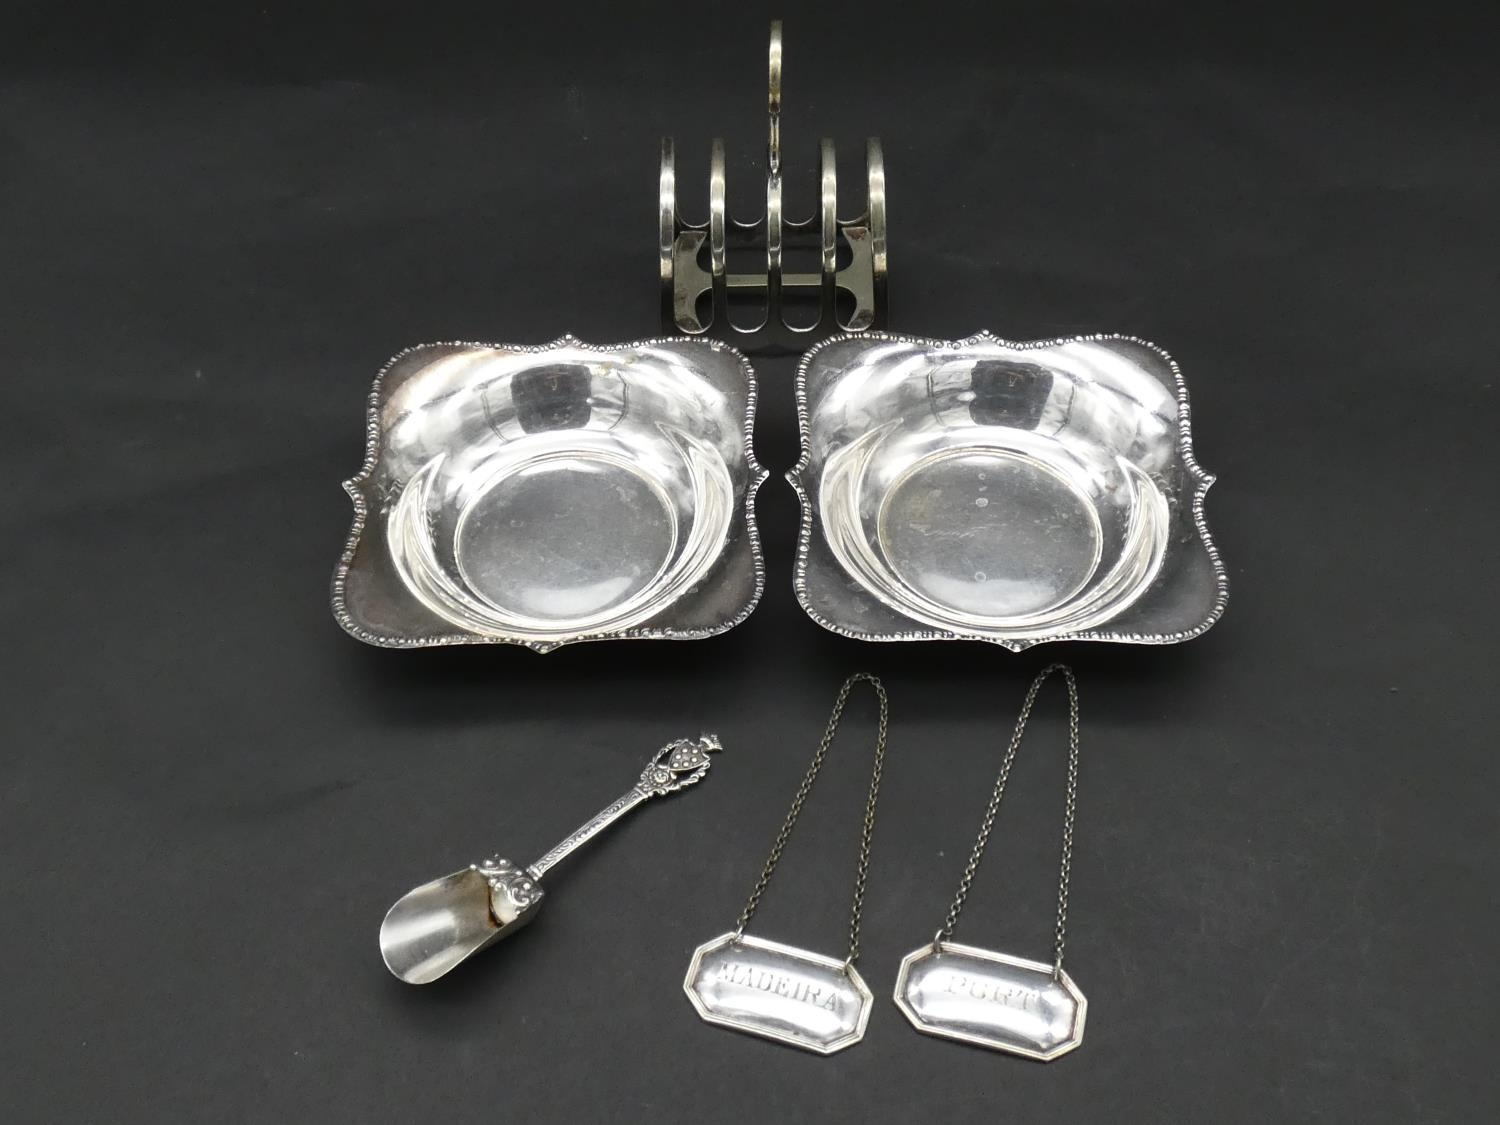 A collection of silver and silver plate items. Including a toast rack, two floral design dishes a